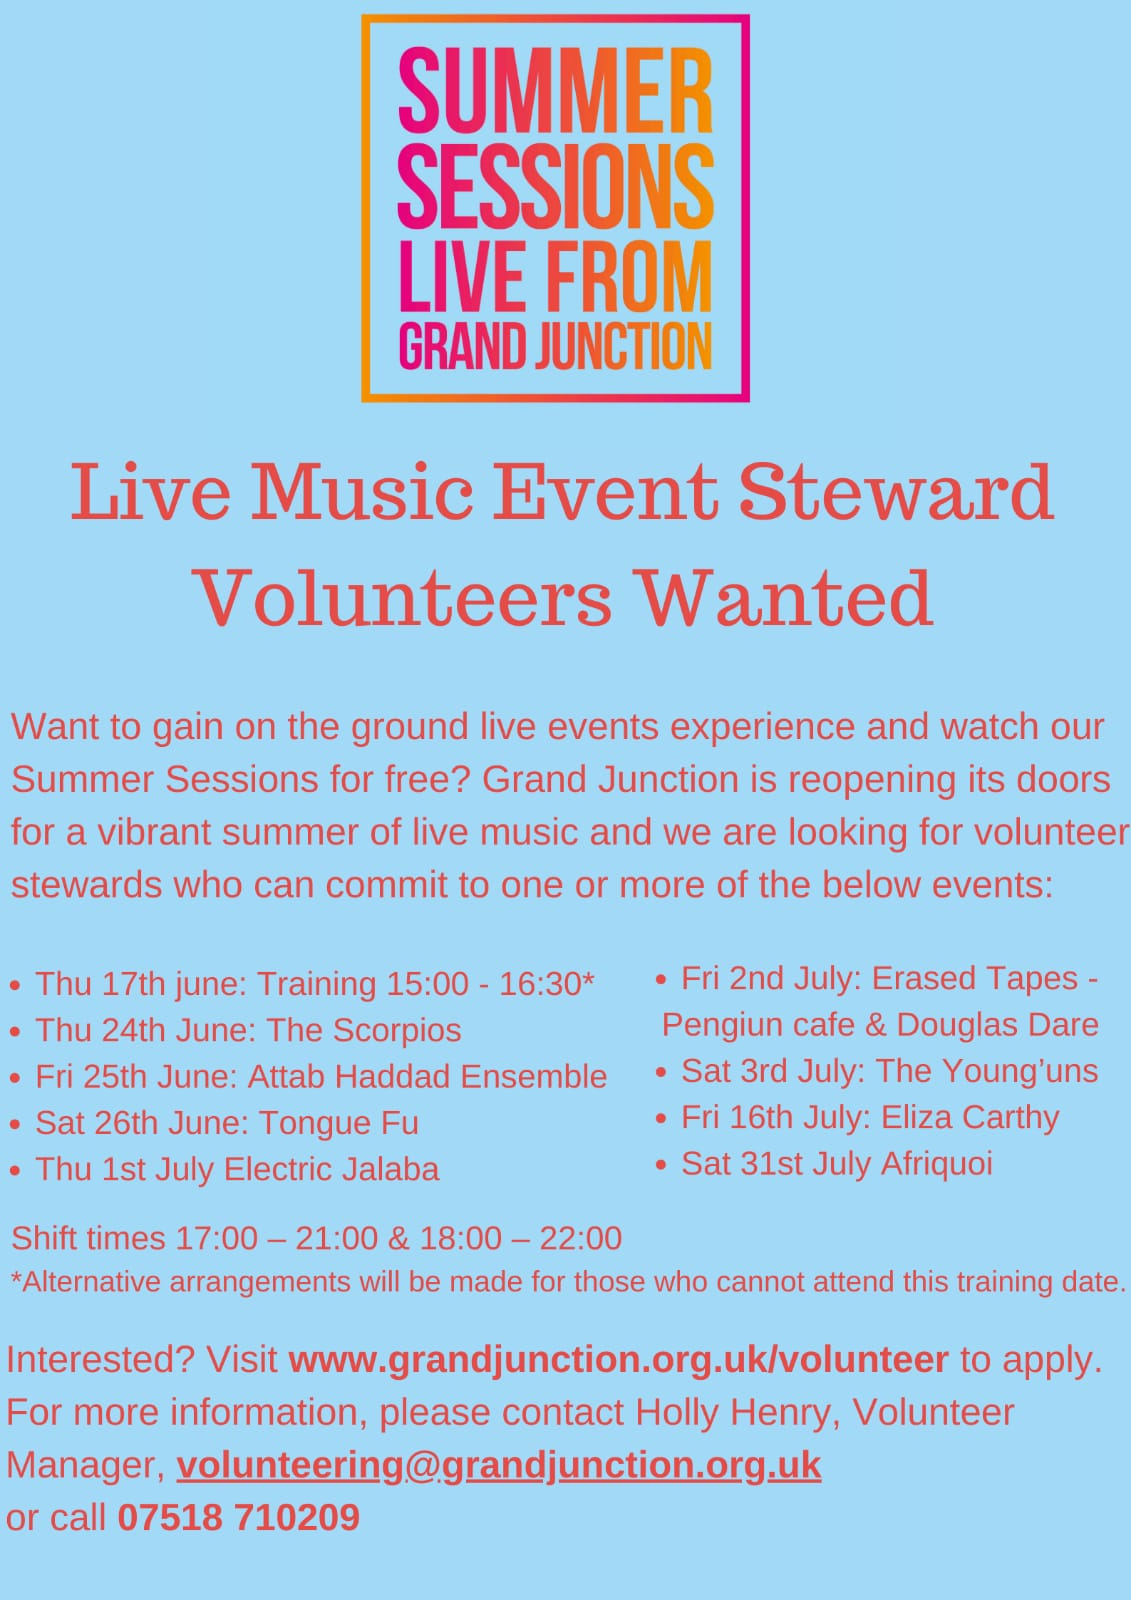 SUMMER SESSIONS LIVE FROM GRAND JUNCTION  Live Music Event Steward Volunteers Wanted  Want to gain on the ground live events experience and watch our Summer Sessions for free? Grand Junction is reopening it's doors for a vibrant summer of live music and we are looking for volunteer stewards who can commit to one or more of the below events:  - Thu 17th June: Training 15:00 - 16:30* Fri 2nd July Erased Tapes - Penguin cafe & Douglas Dare - Thu 24th June: The Scorpios  - Fri 25th June: Attab Haddad Ensemble Sat 3rd July The Young'uns - Sat 26th June: Tongue Fu Fri 16th July Eliza Carthy - Thu 1st July Electric Jalaba Sat 31st July Afriquoi  Shift times 17:00 — 21:00 & 18:00 — 22:00 *Alternative arrangements will be made for those who cannot attend this training date  Interested? Visit www.grandjunction.org uk/volunteer to apply For more information please contact Holly Henry, Volunteer Manager, volunteering@grandjunction.org uk or call 07518 710209